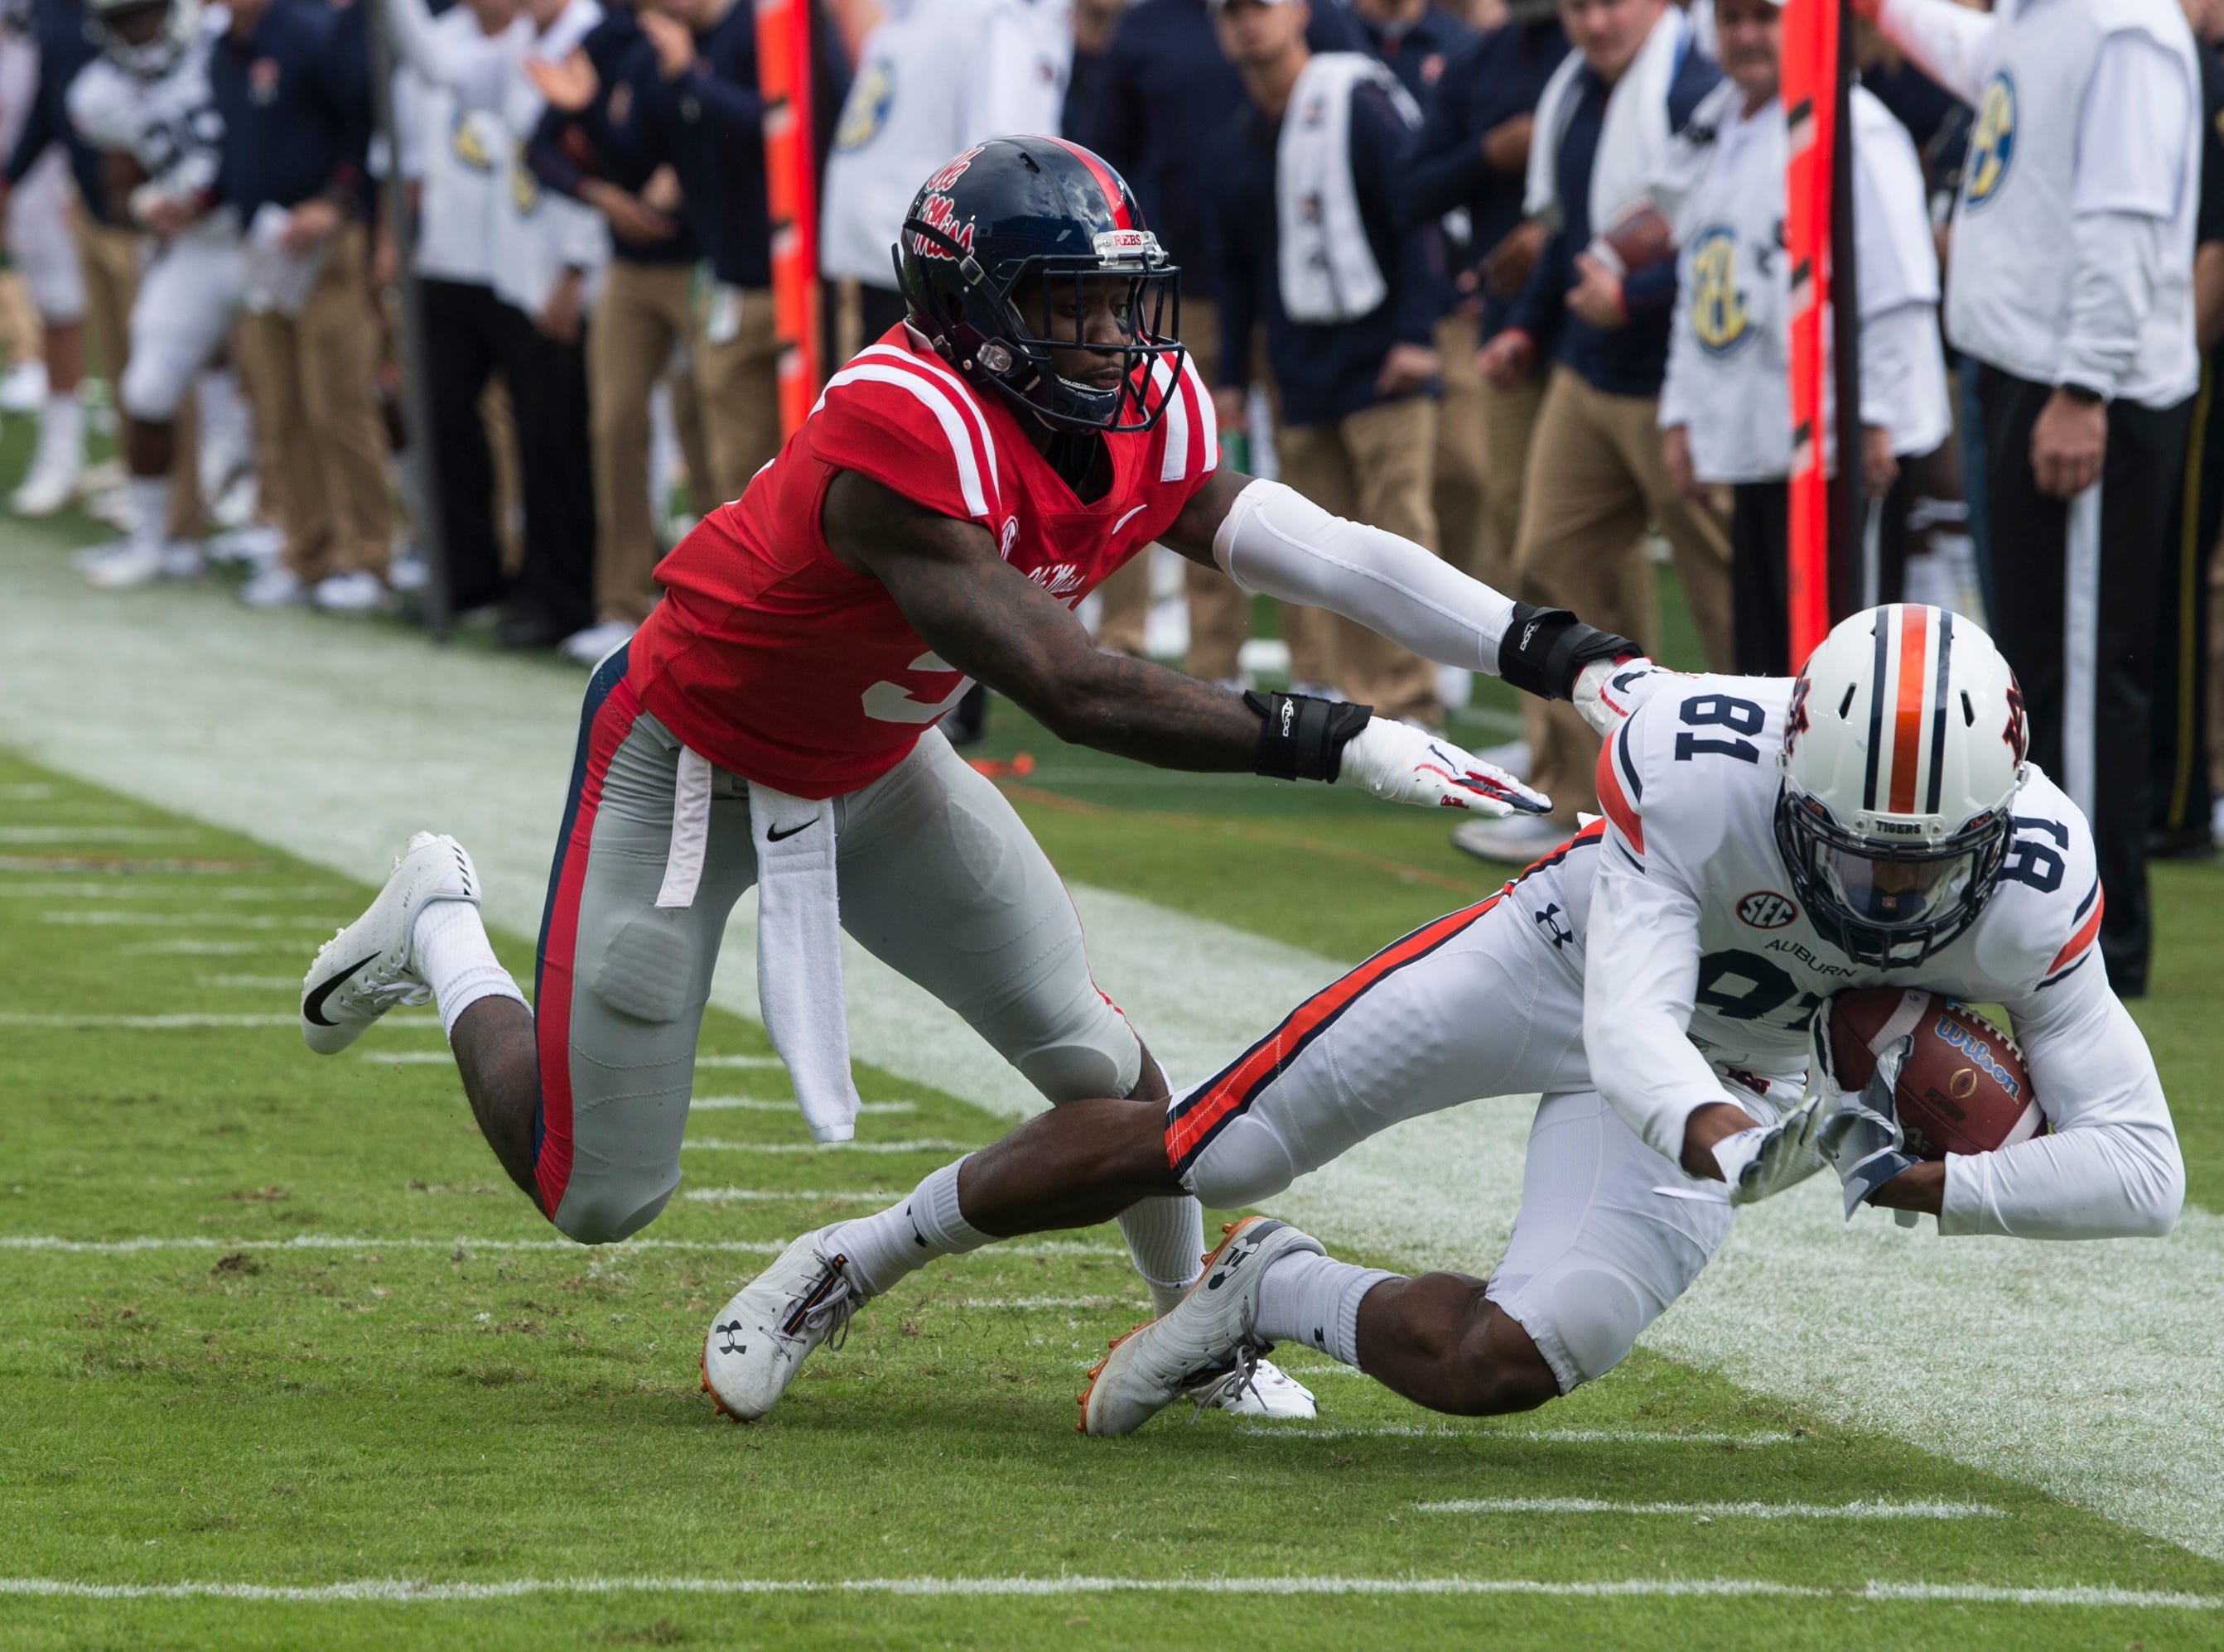 Auburn's Darius Slayton (81) is tackled by Ole Miss' Ken Webster (5) at Vaught-Hemingway Stadium in Oxford, Miss., on Saturday, Oct. 20, 2018. Auburn defeated Ole Miss 31-16.